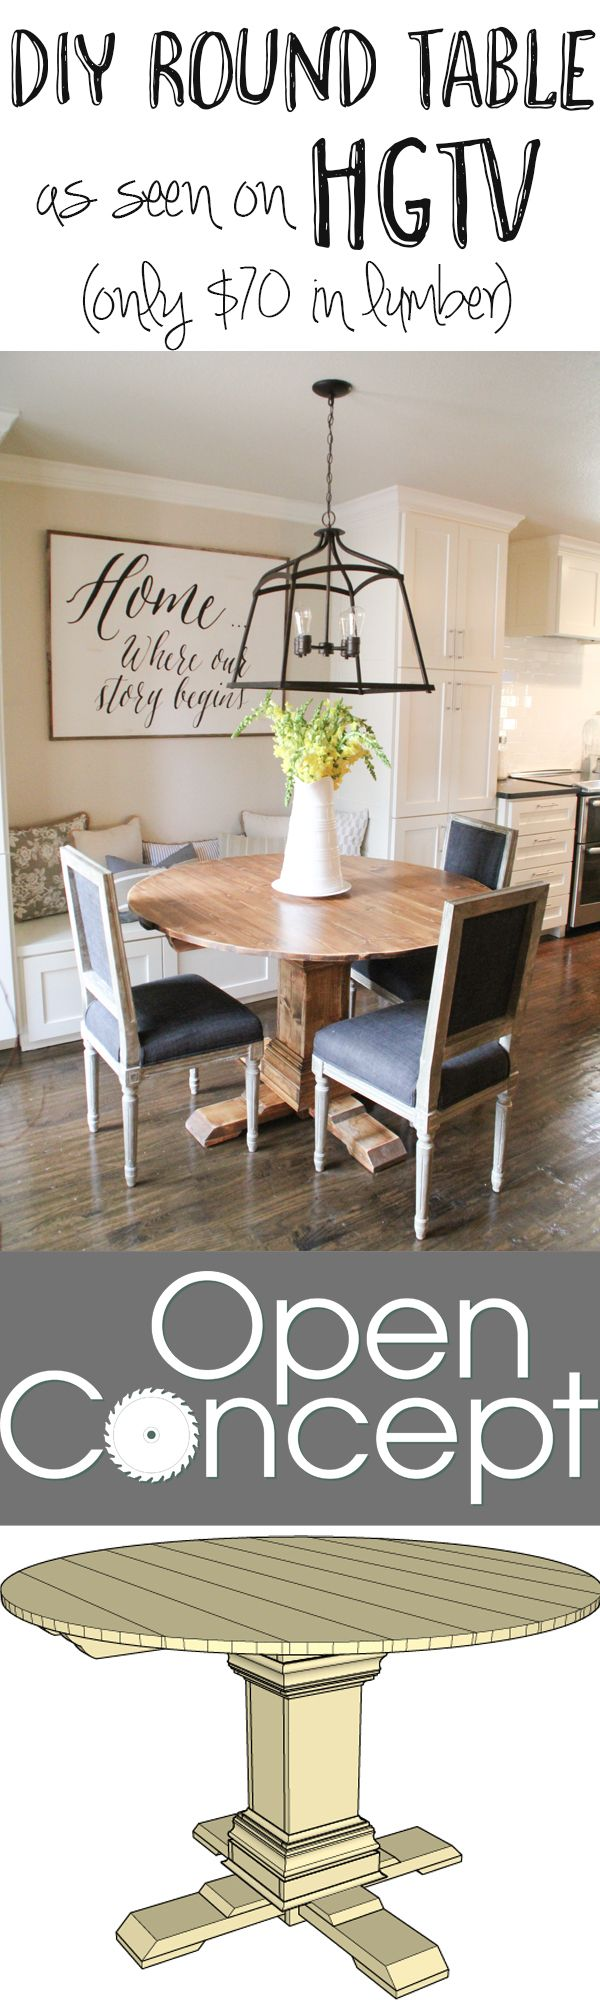 Diy round table as seen on hgtv open concept wall for Diy round farmhouse table plans